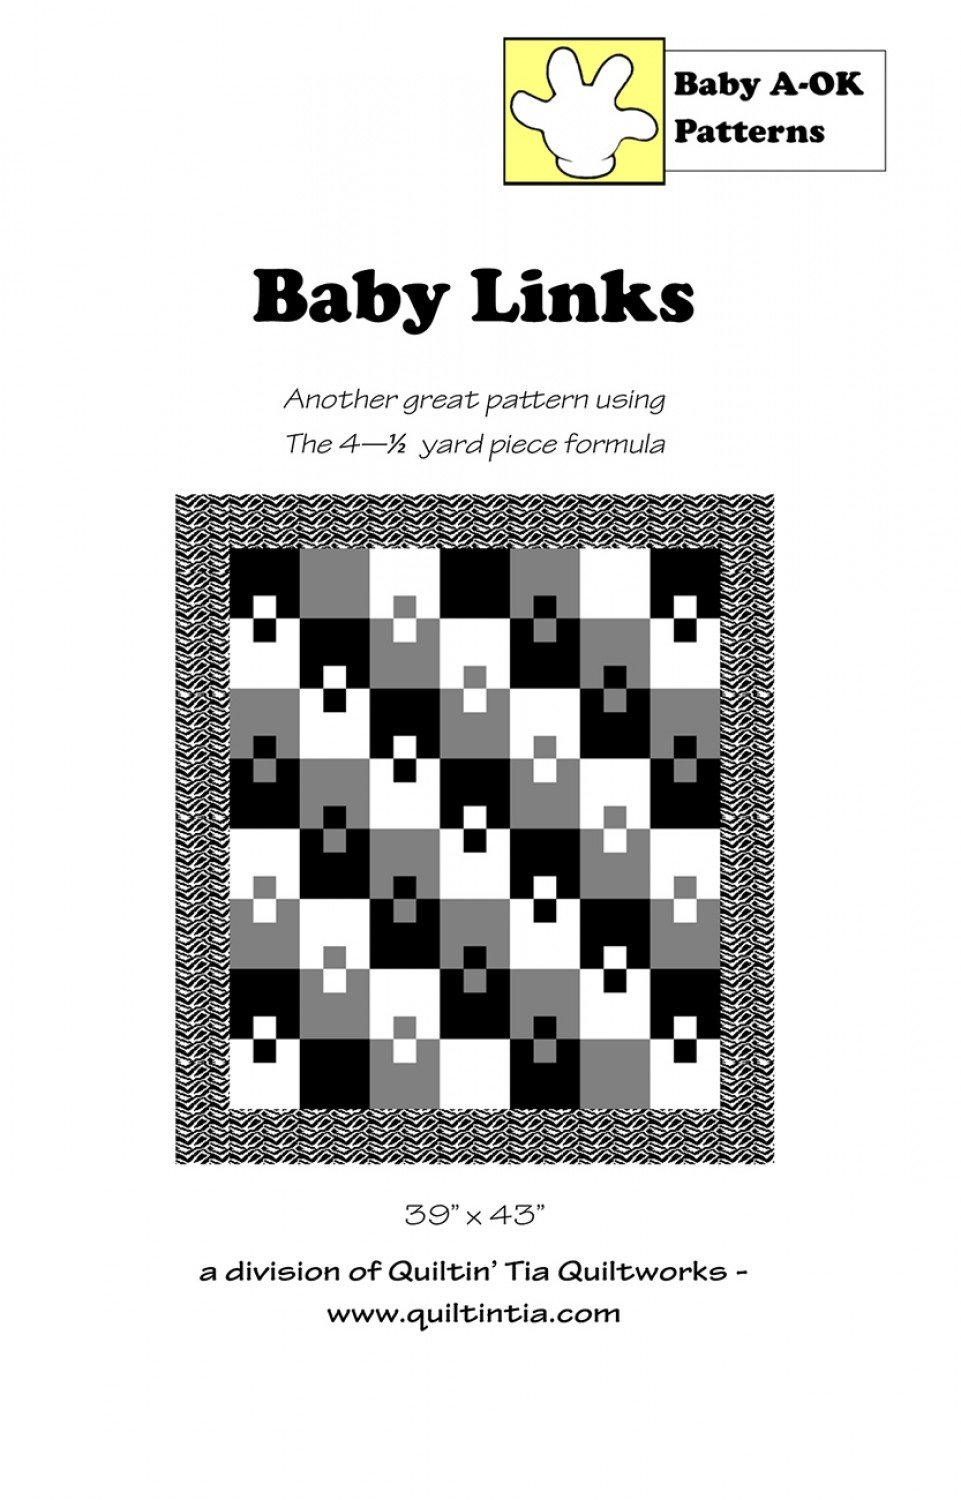 Baby Links - Baby A-OK Pattern